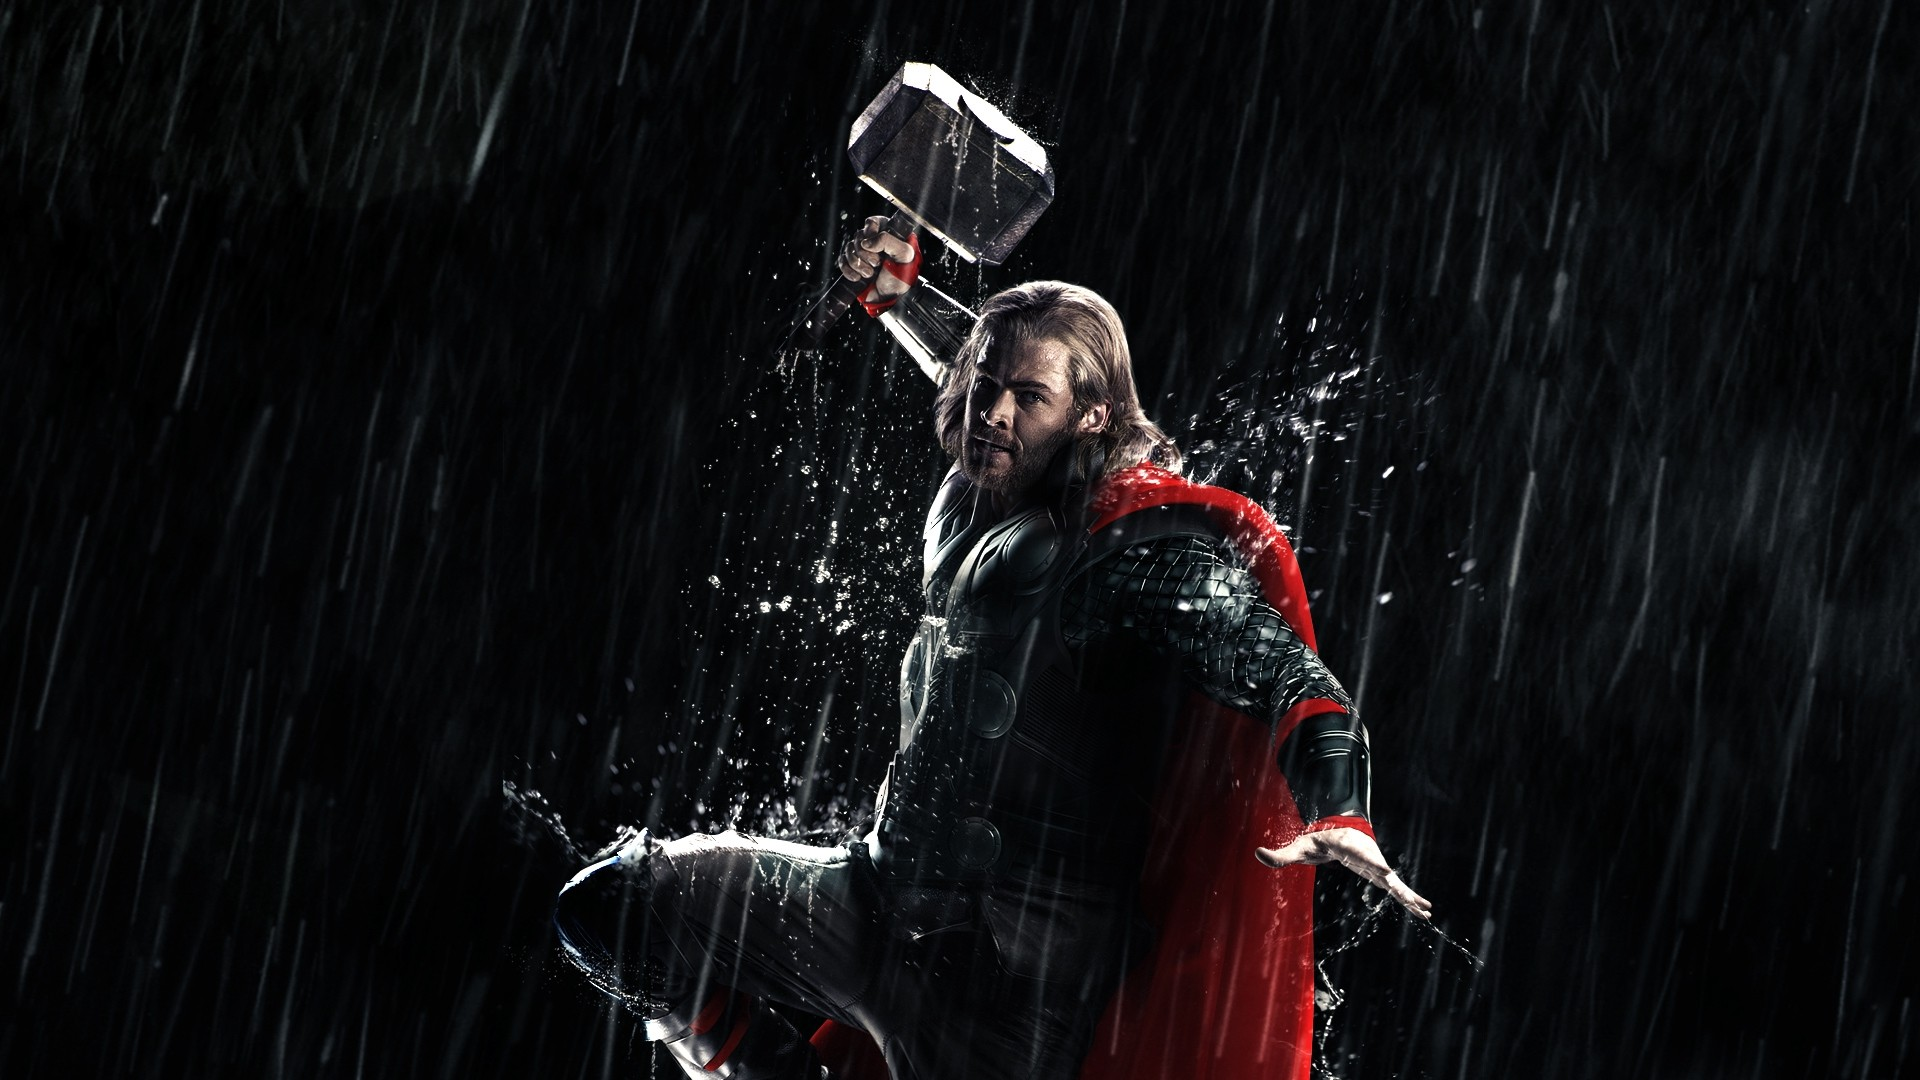 Thor has it all. Wonderful action moments, which are visually stunning. Like when Thor leaps from the balcony, summons his hammer with a little mid-air ...